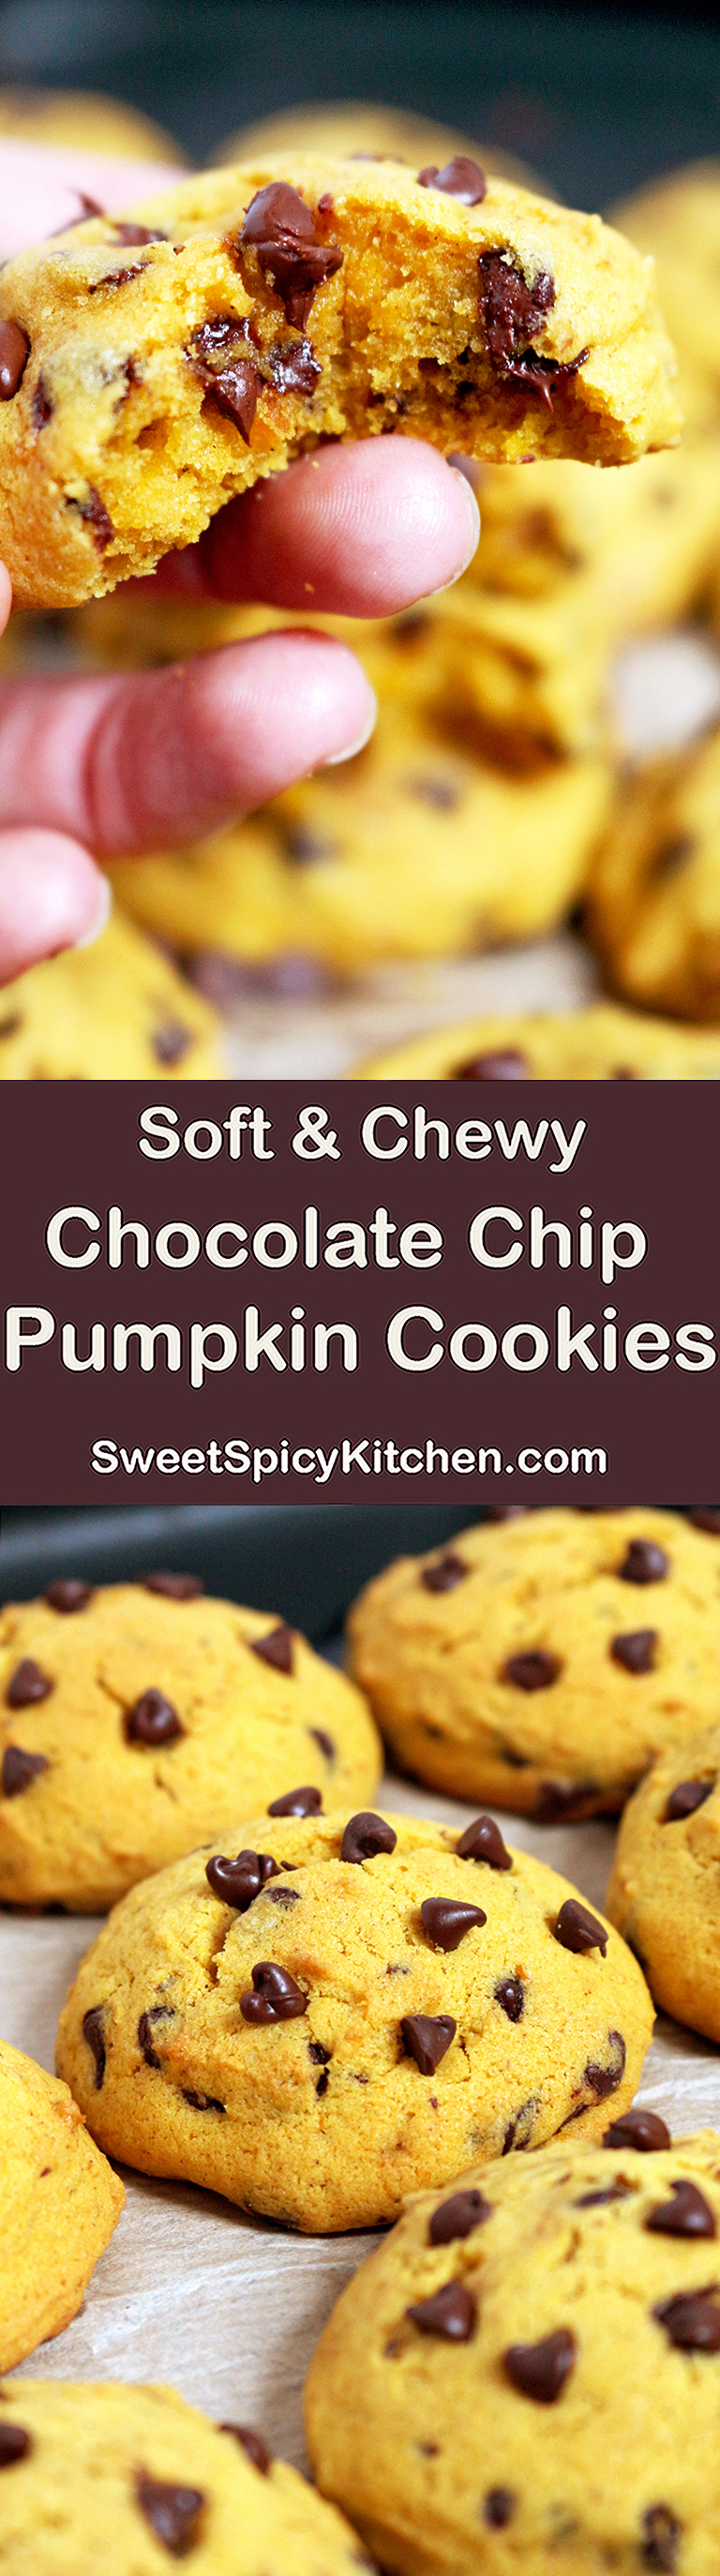 Soft Chocolate Chip Pumpkin Cookies